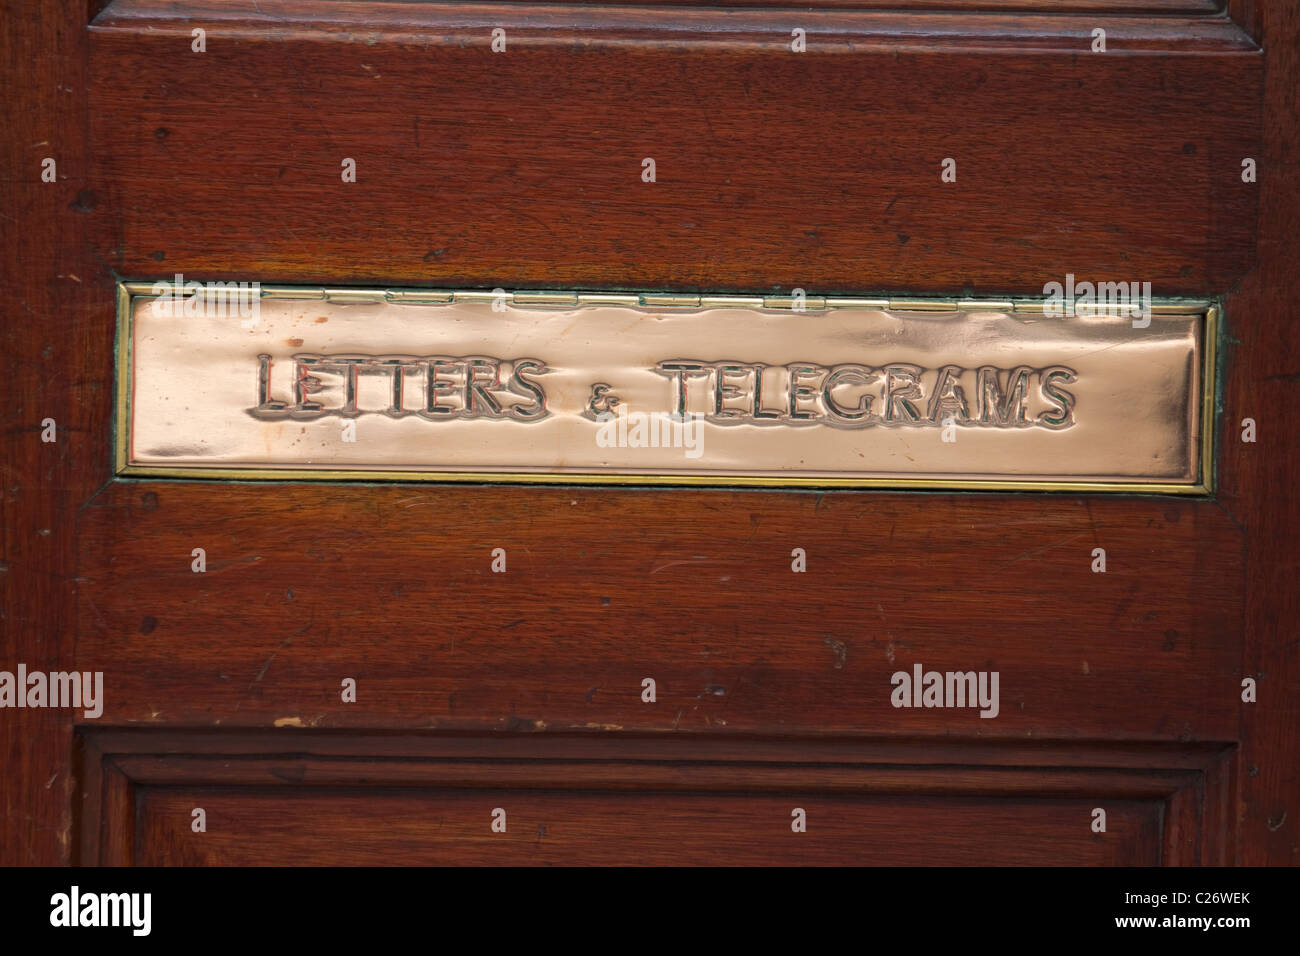 Letter and telegrams postbox letterbox, London - Stock Image